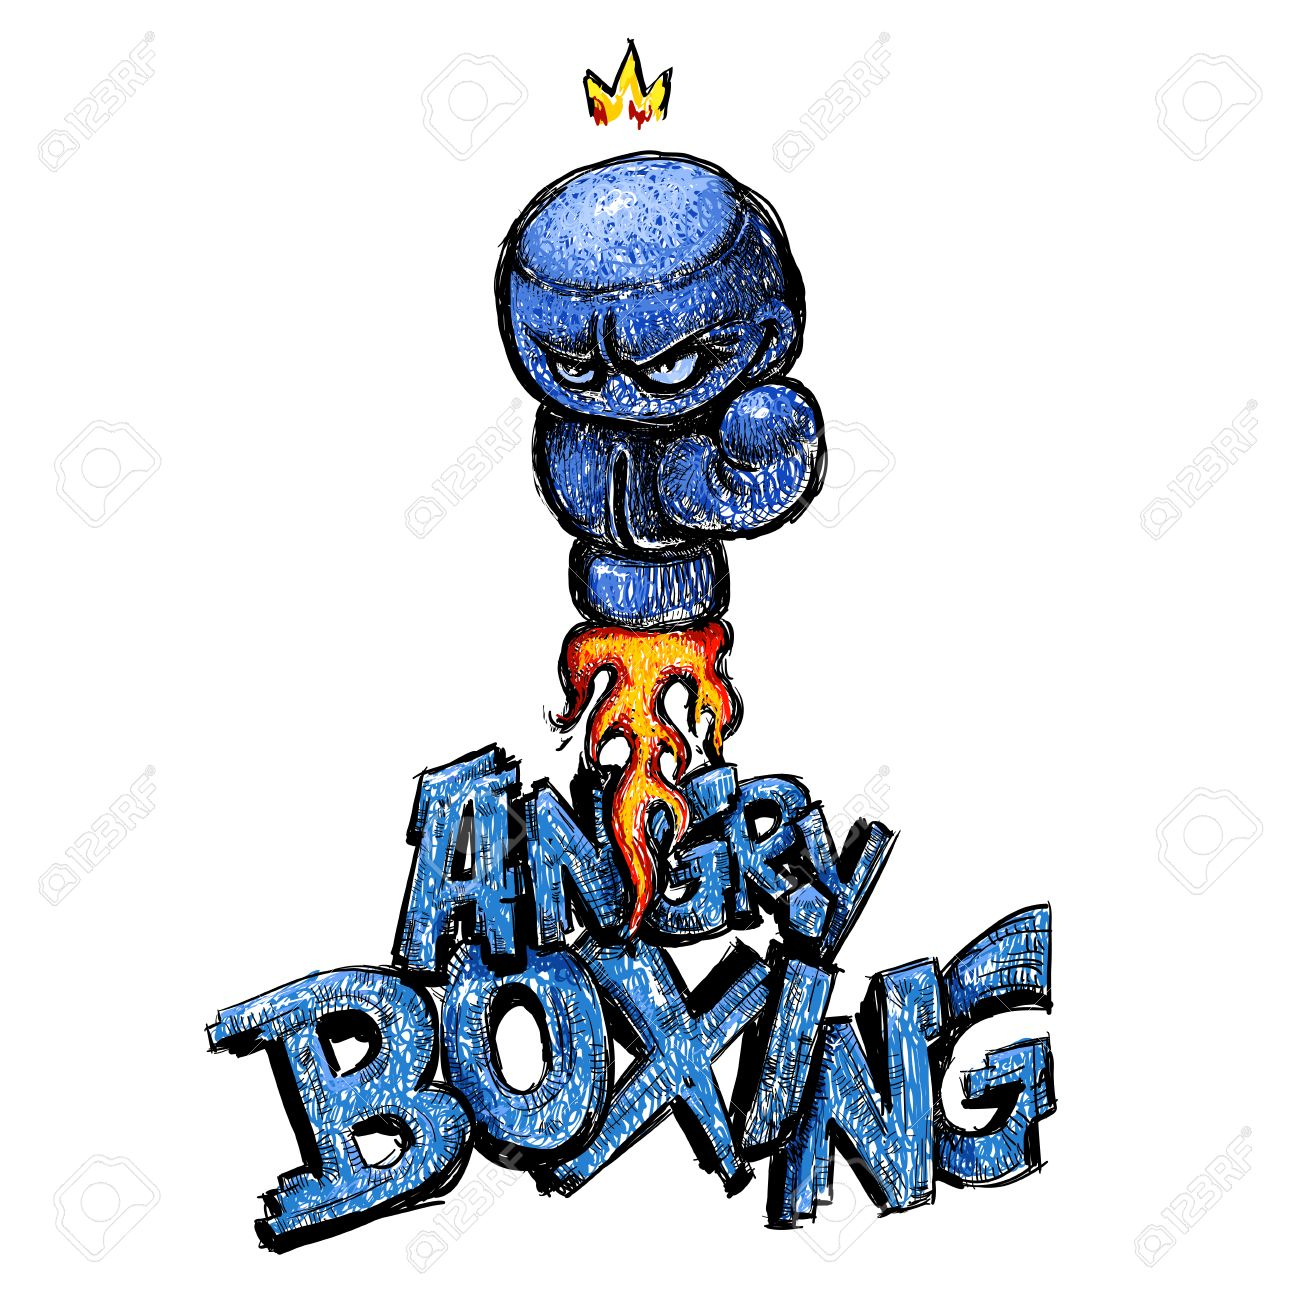 1300x1300 Angry Boxing Glove Drawing, Cartoon Hand Made Style Royalty Free